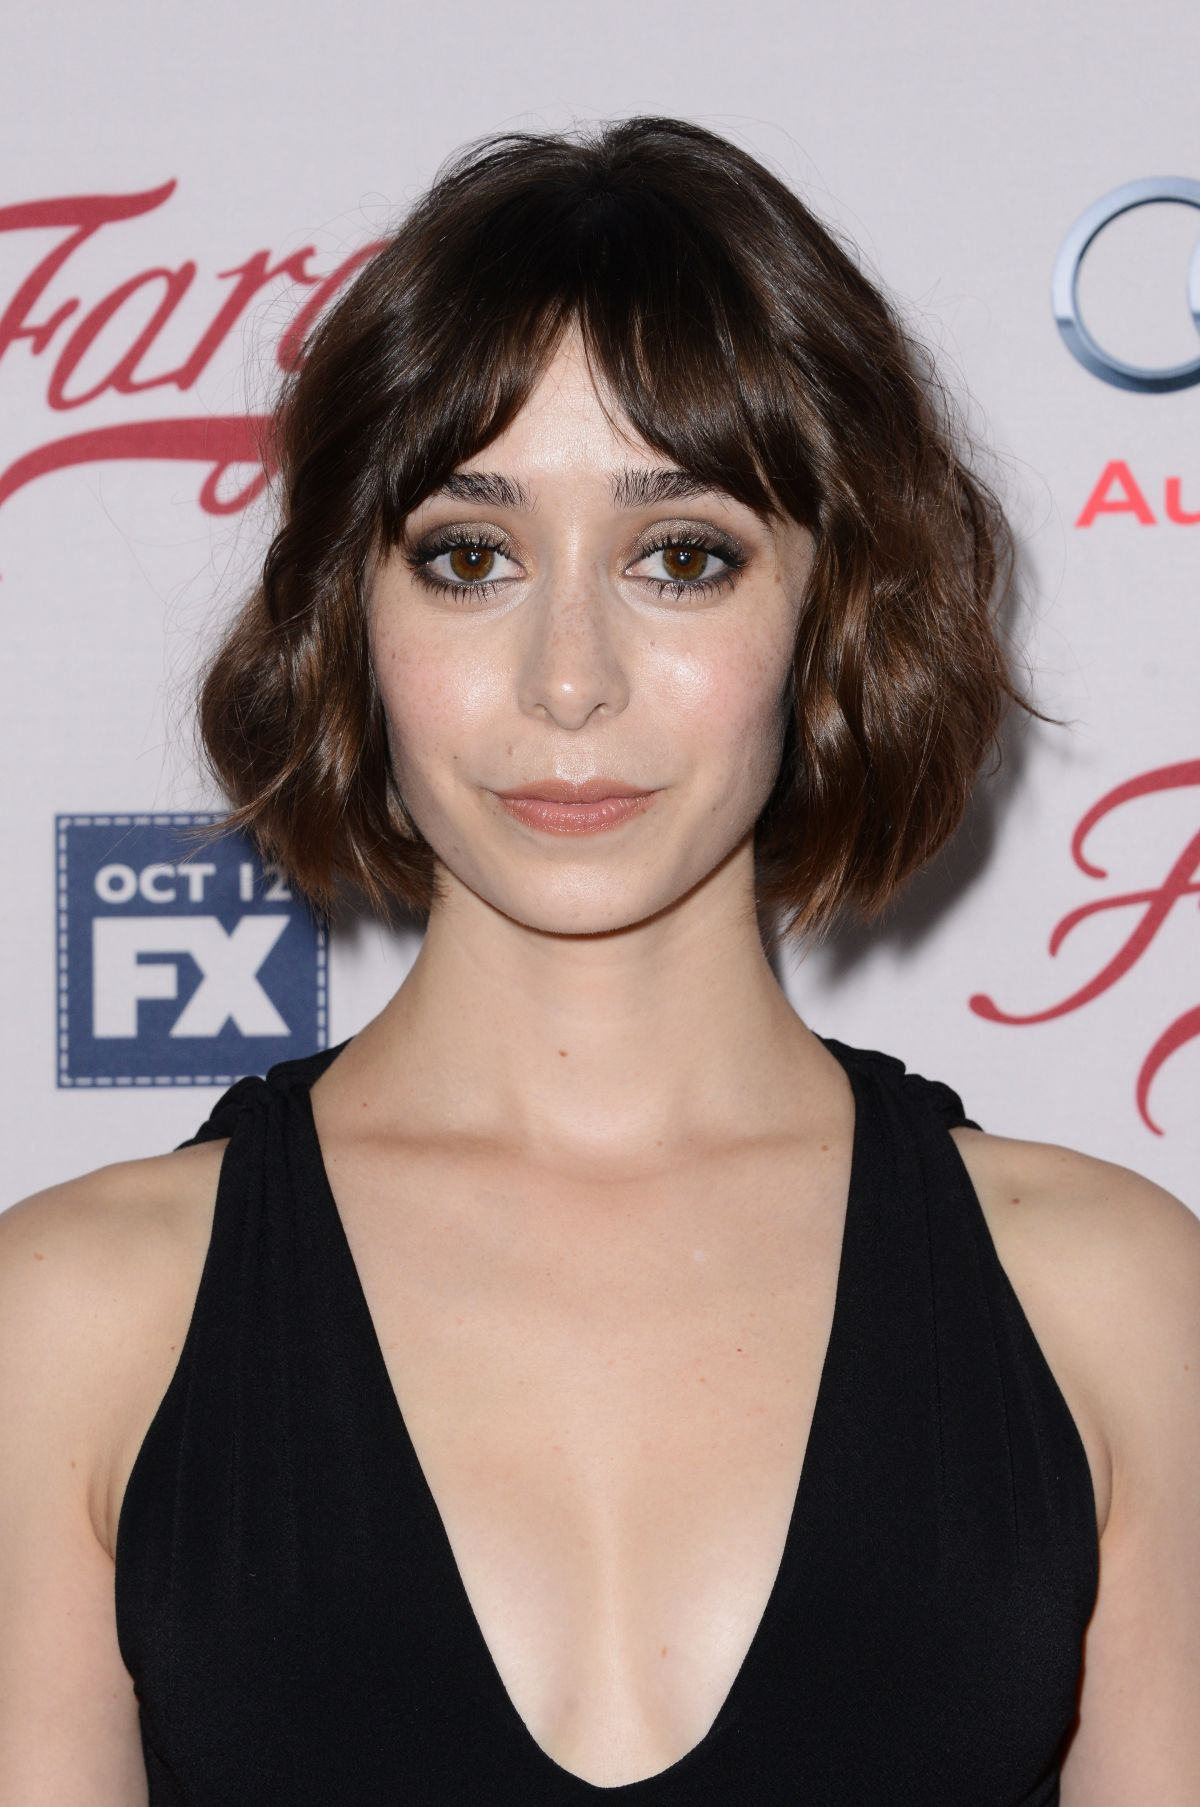 CRISTIN MILIOTI at Fargo Season 2 Premiere in Hollywood 10/07/2015